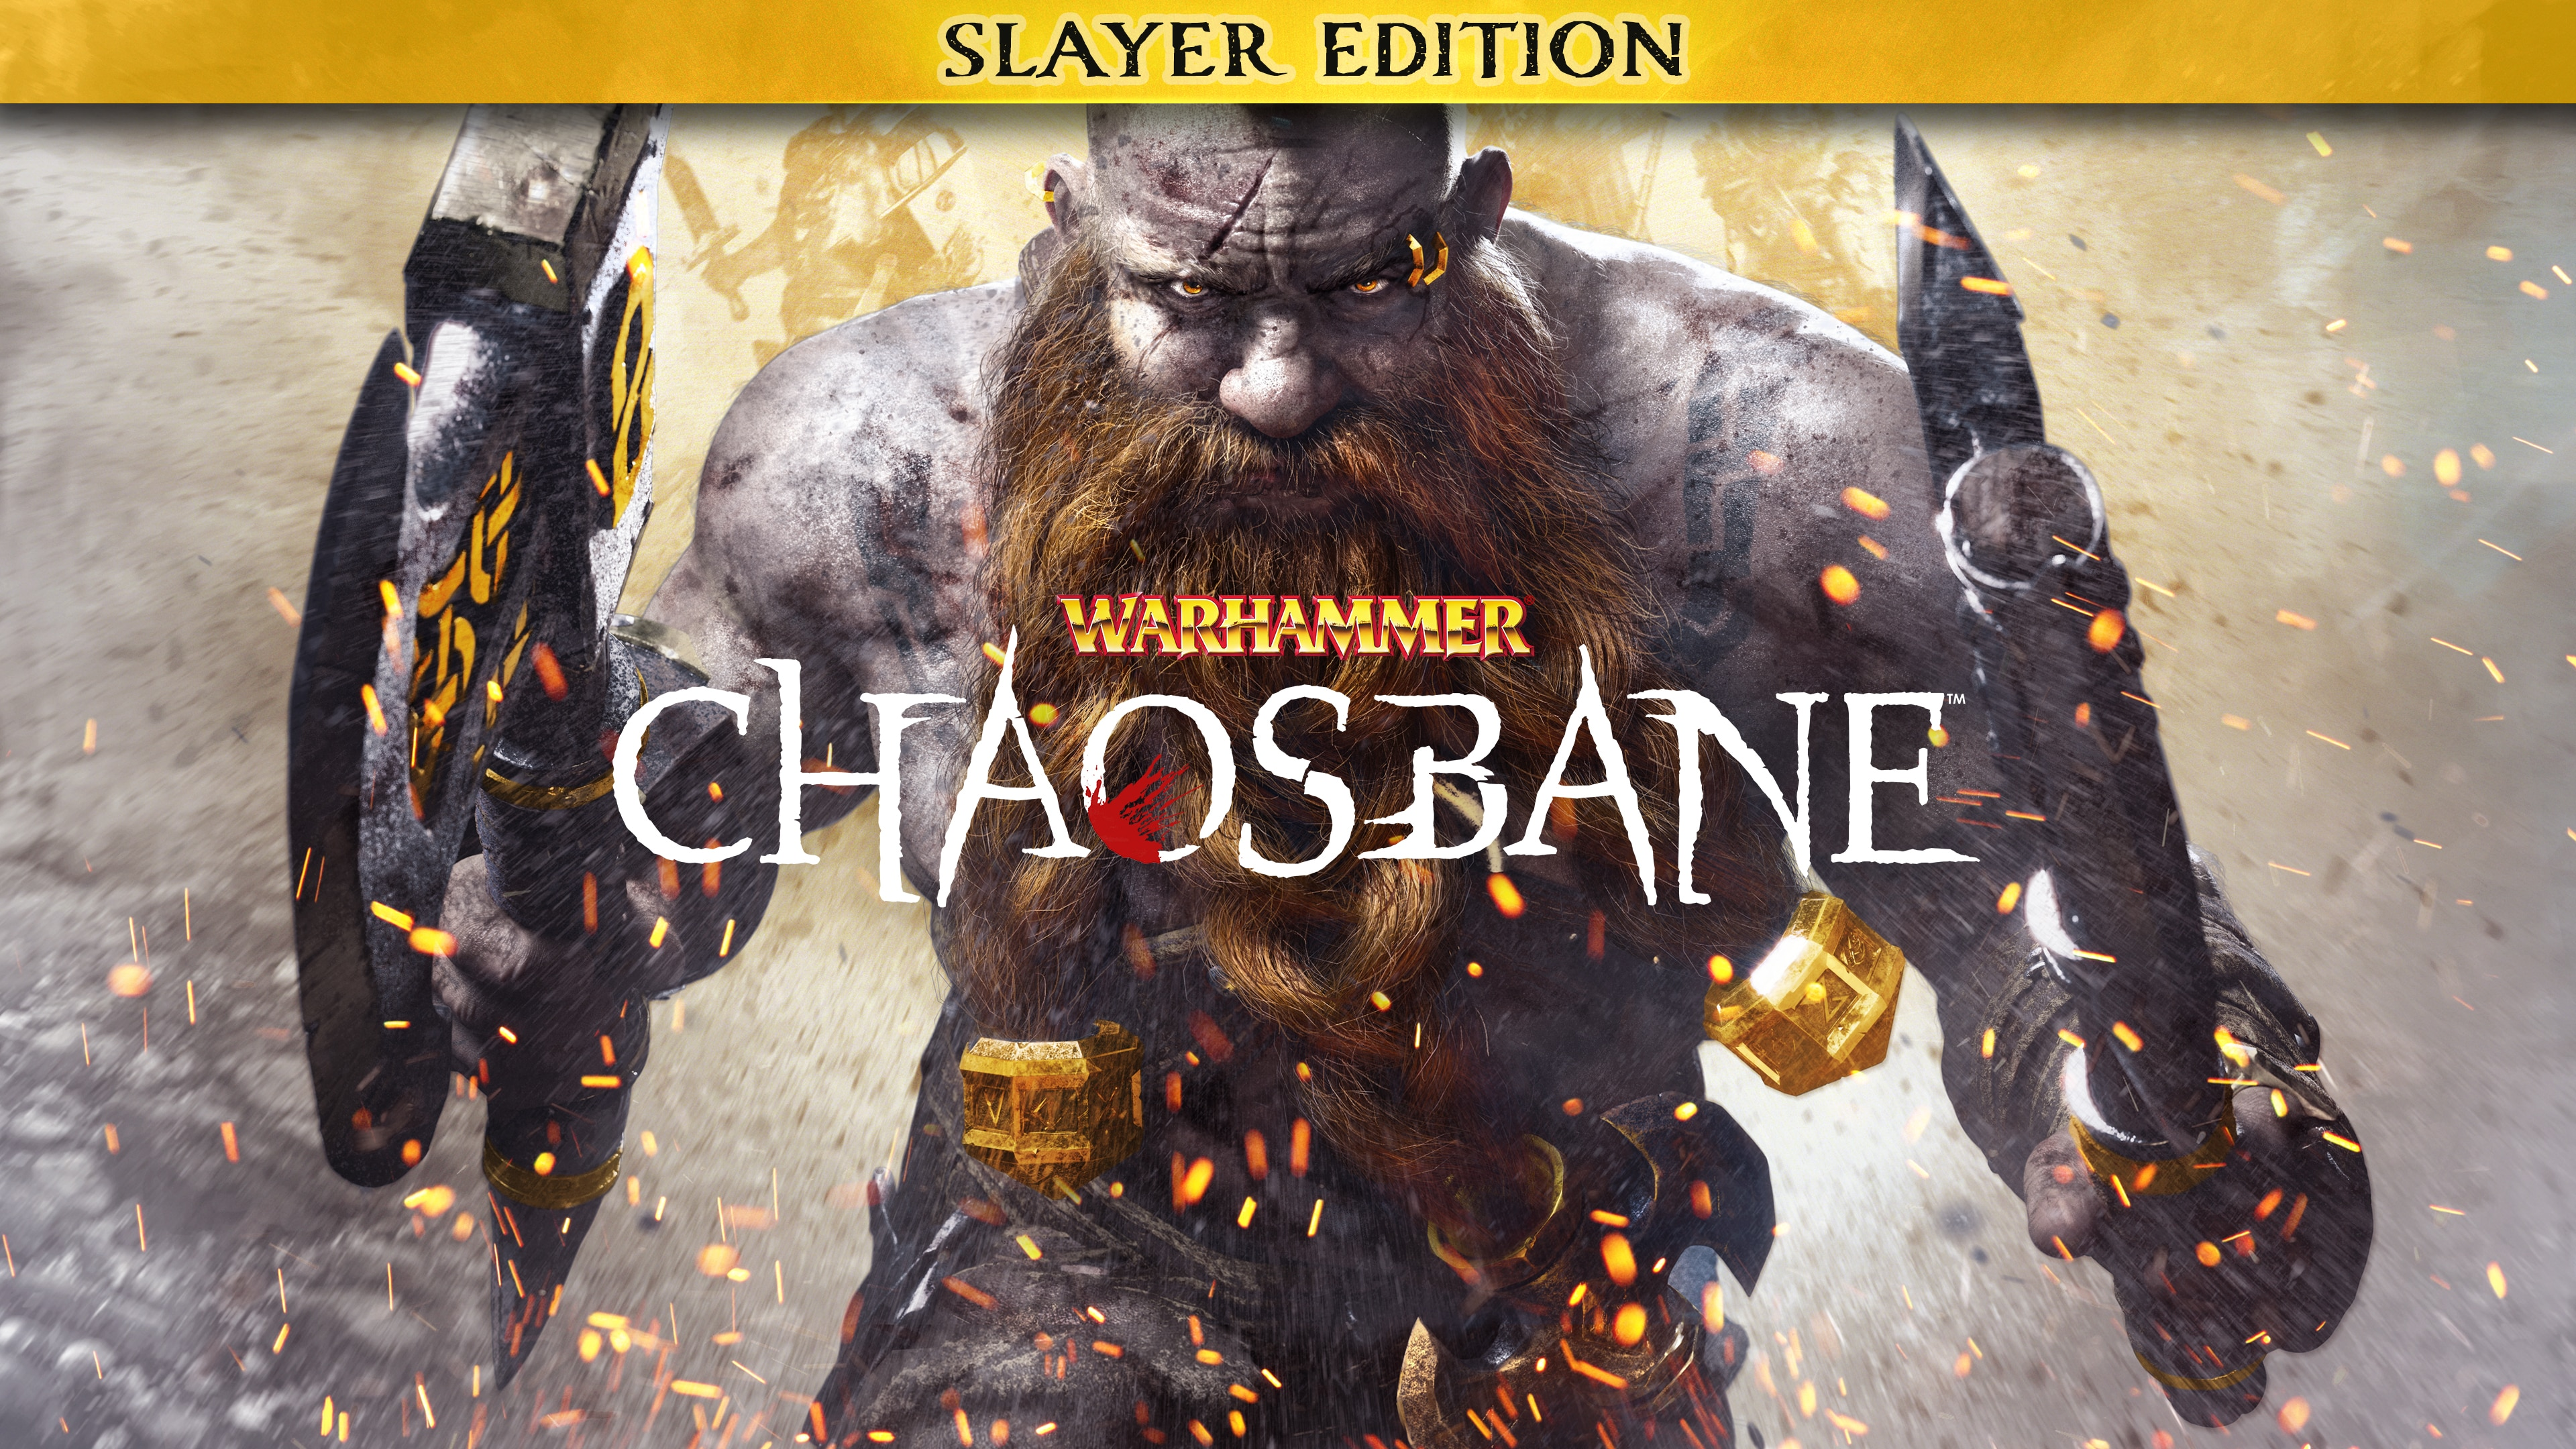 Warhammer: Chaosbane Slayer Edition (Simplified Chinese, English, Korean, Traditional Chinese)